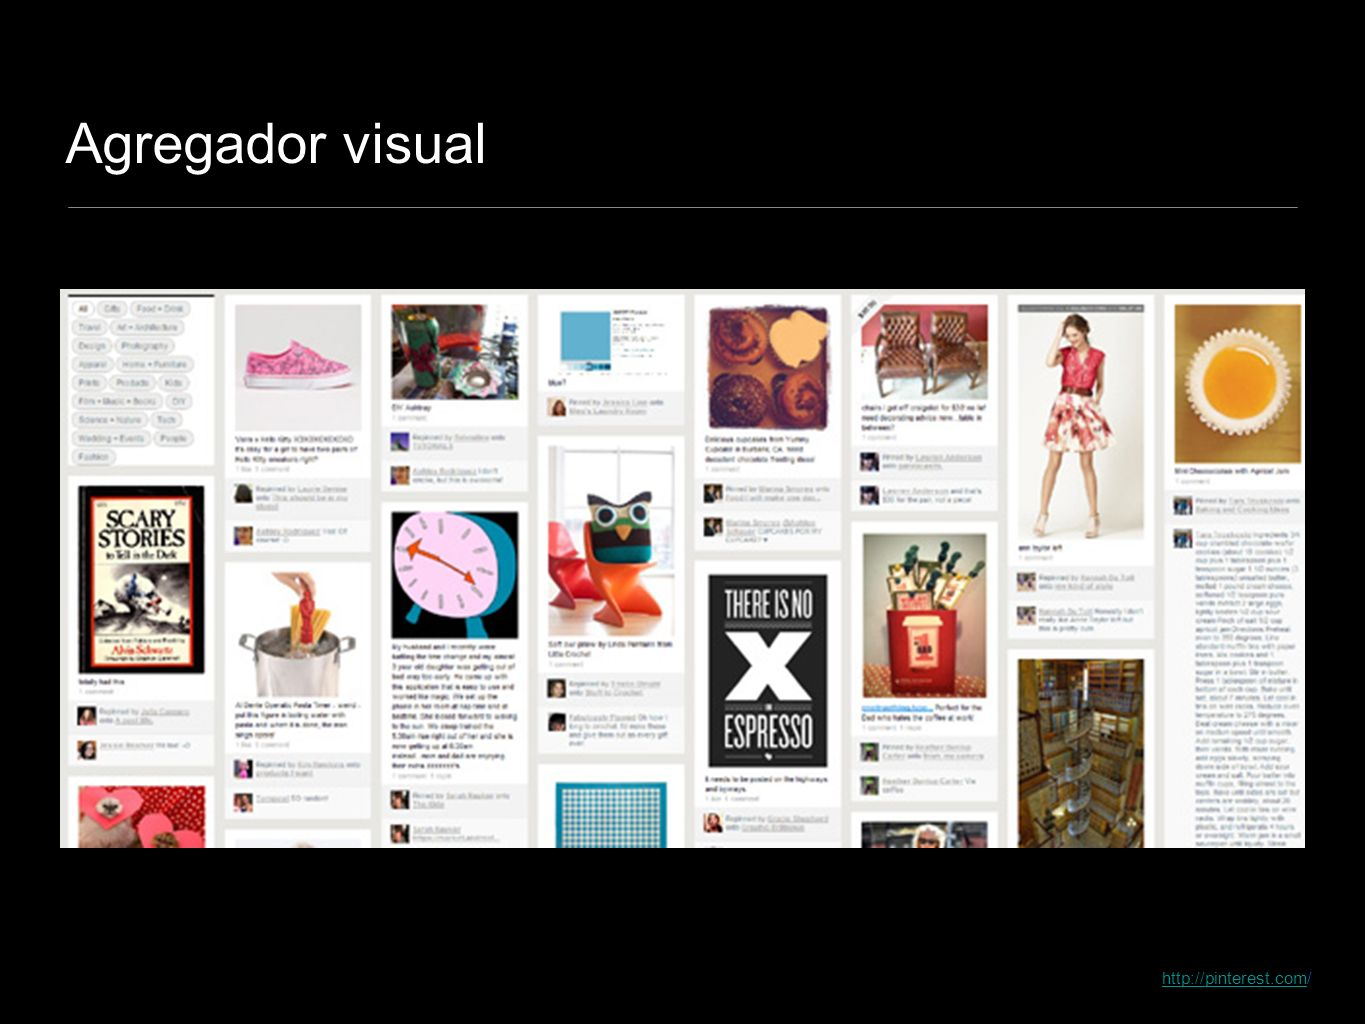 Agregador visual http://pinterest.com/